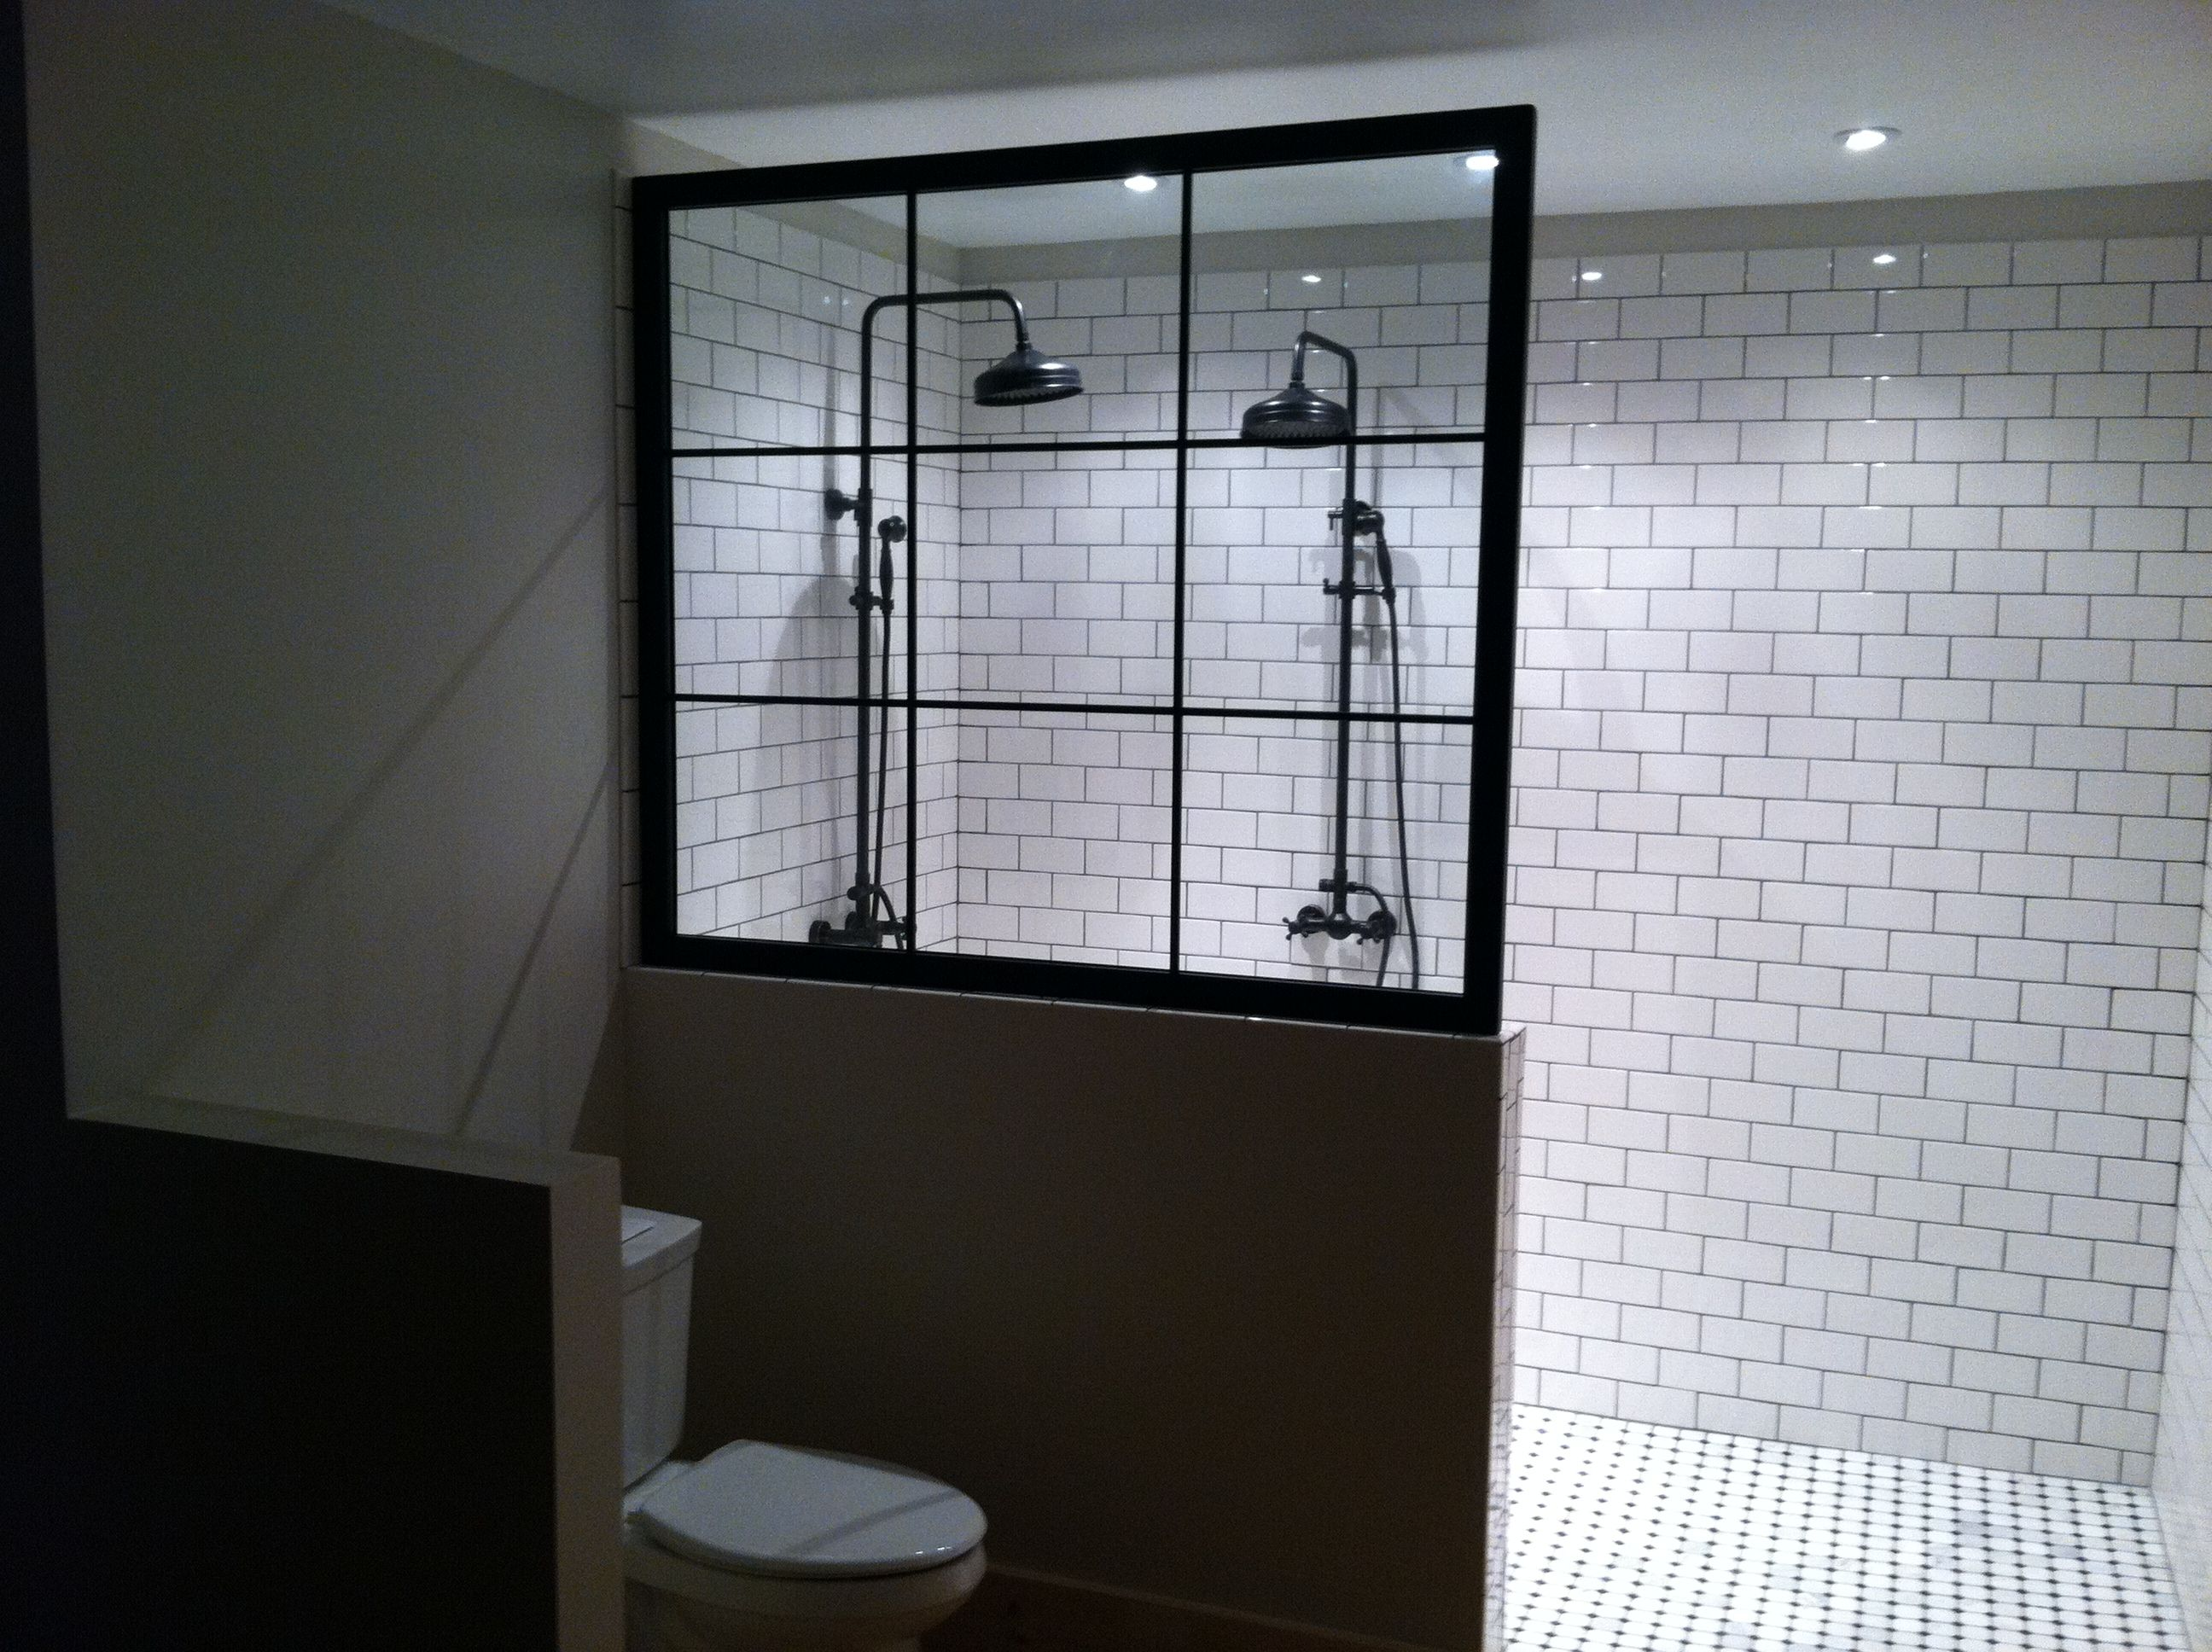 Bathroom Fixtures Warehouse custom shower warehouse window style glass, subway tile, and